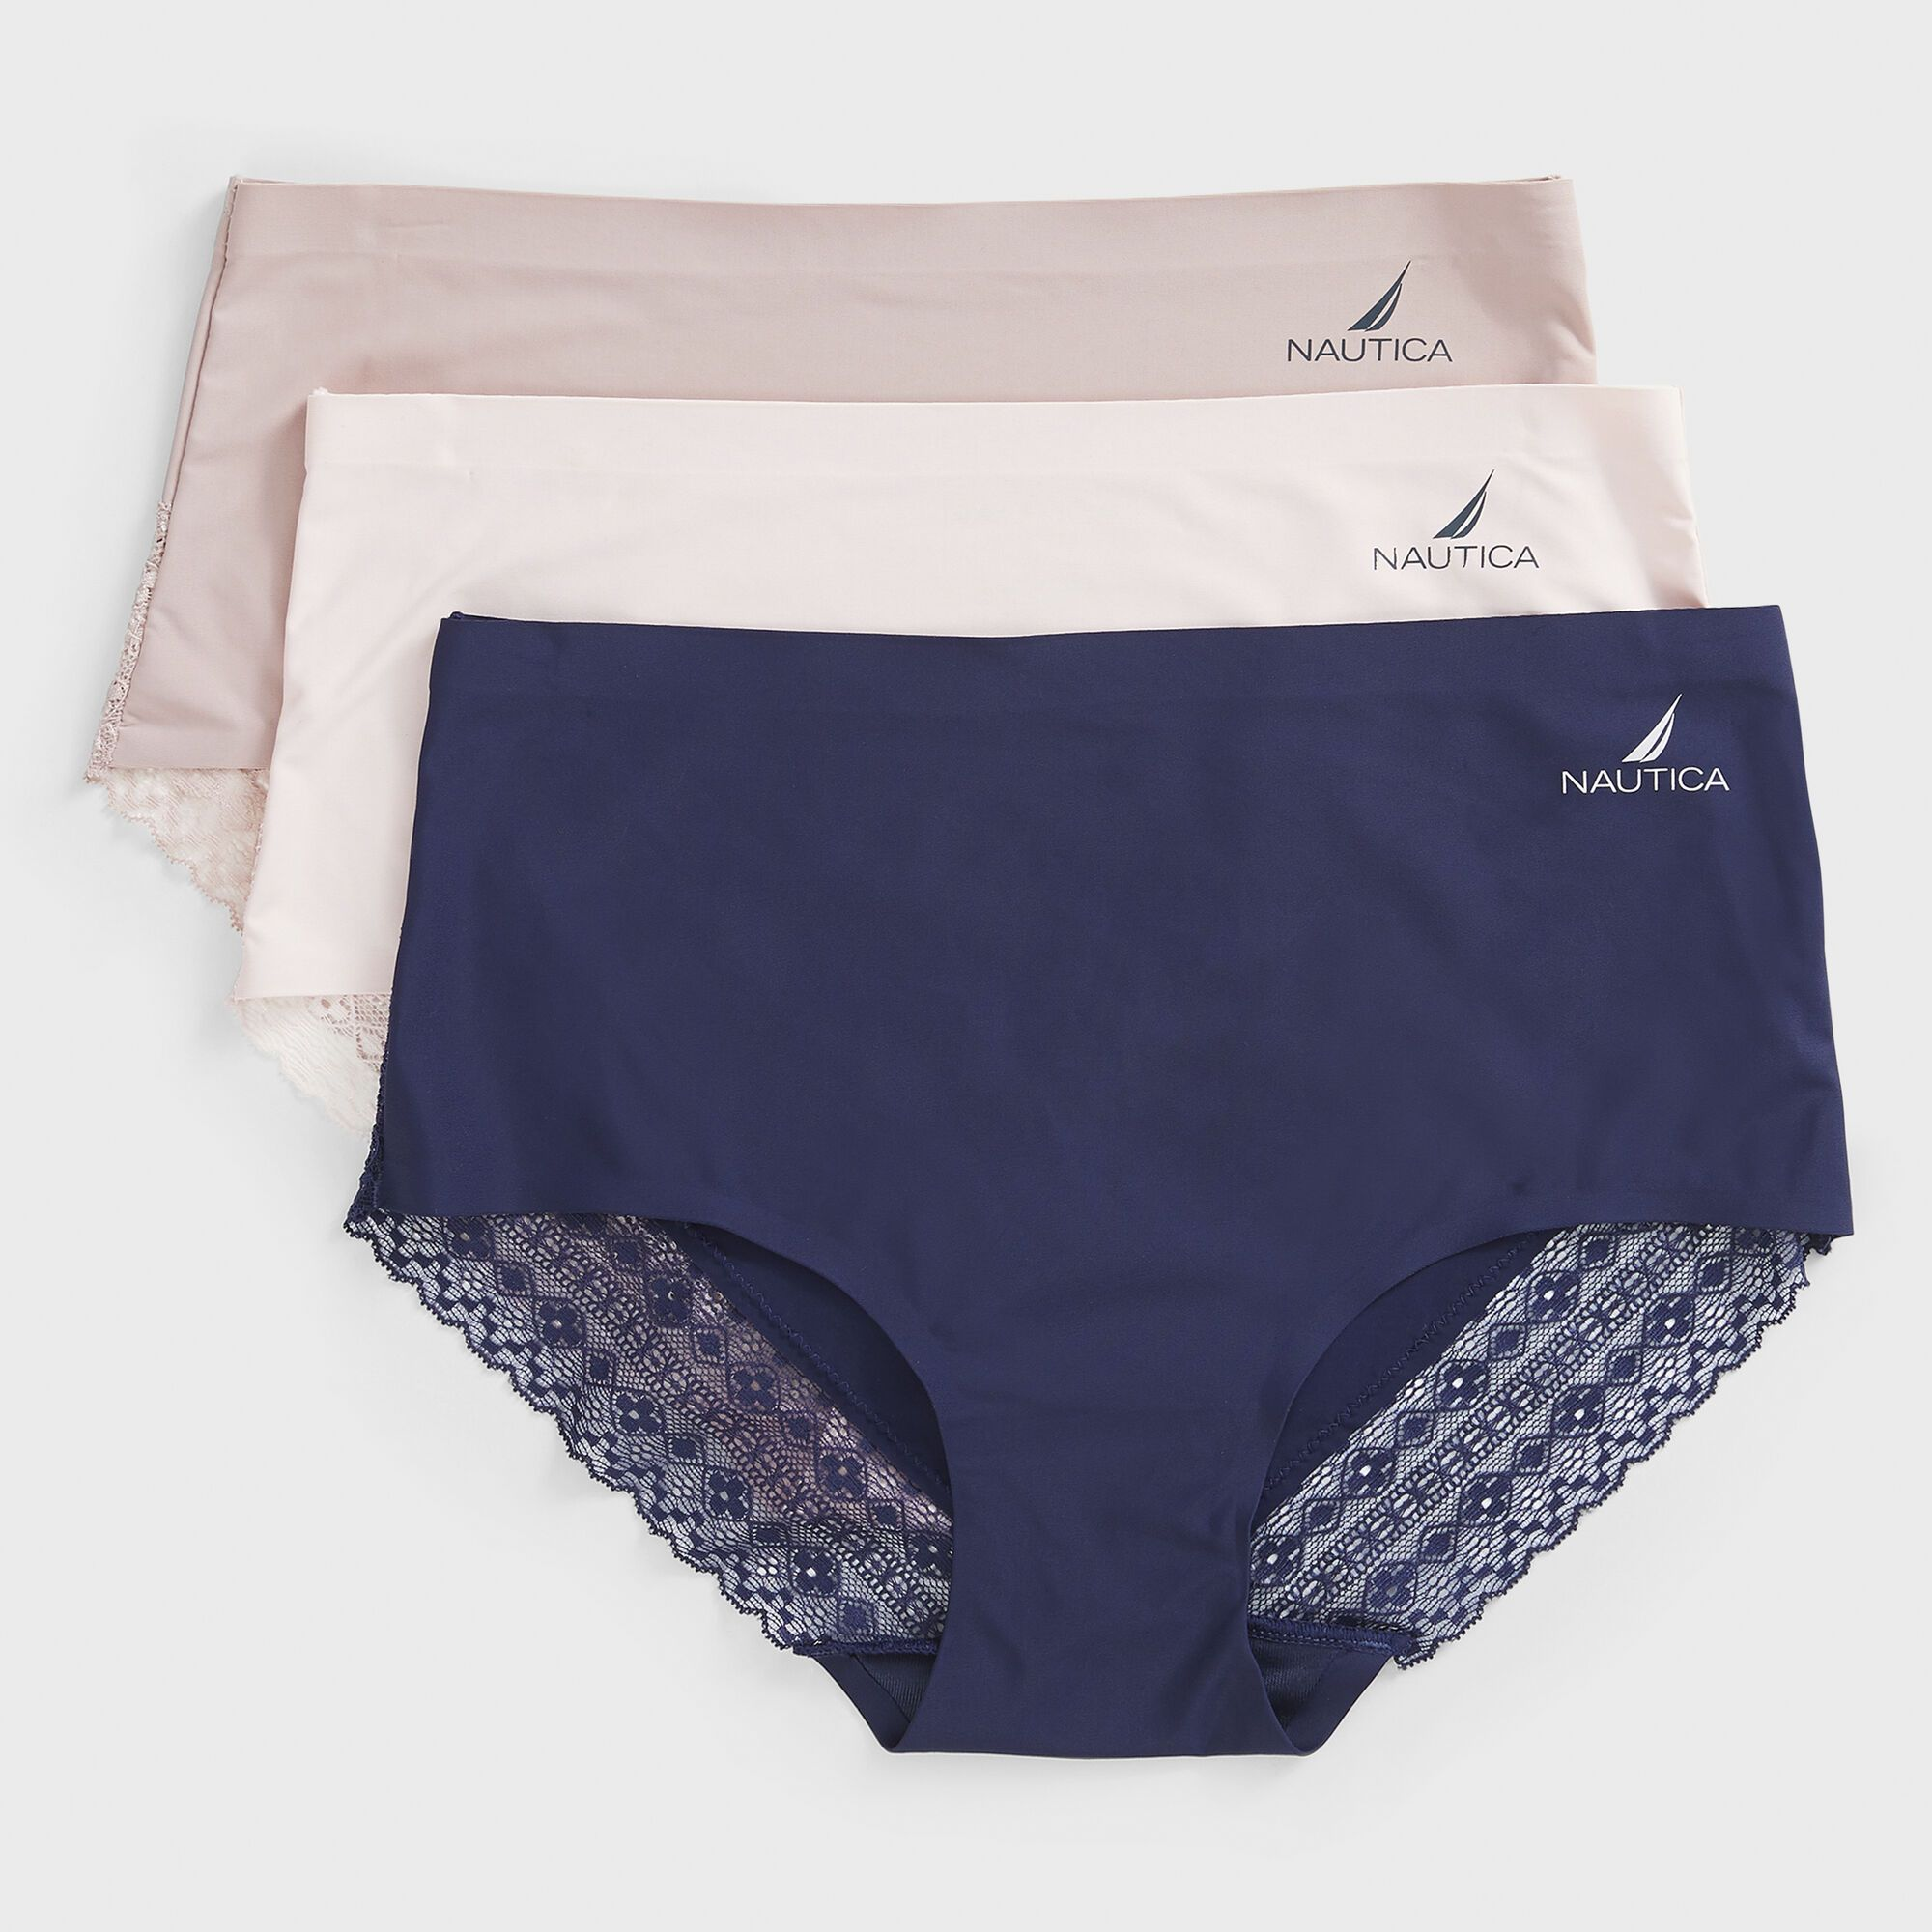 Designed with modest coverage and a moderate legline, these soft-stretch mid-rise briefs feature a smooth elastic waistband.